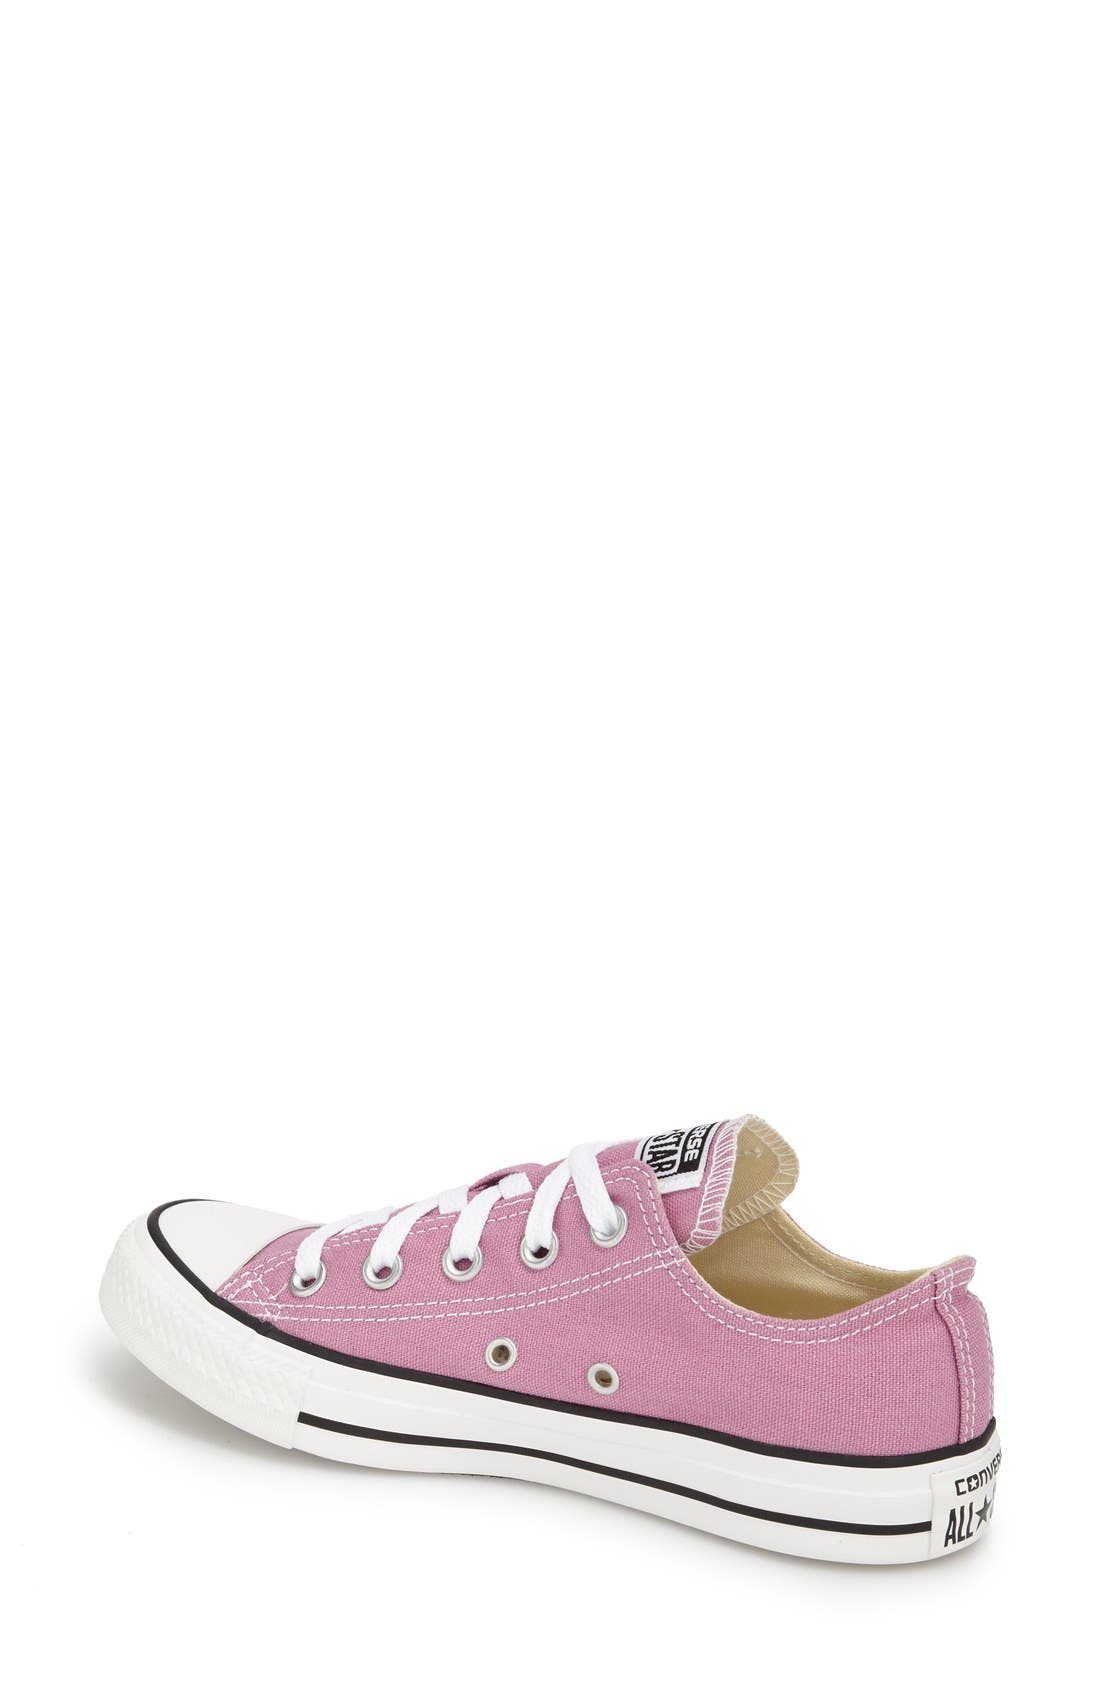 Alternate Image 2  - Converse Chuck Taylor® All Star® 'Ox' Low Top Sneaker (Women)